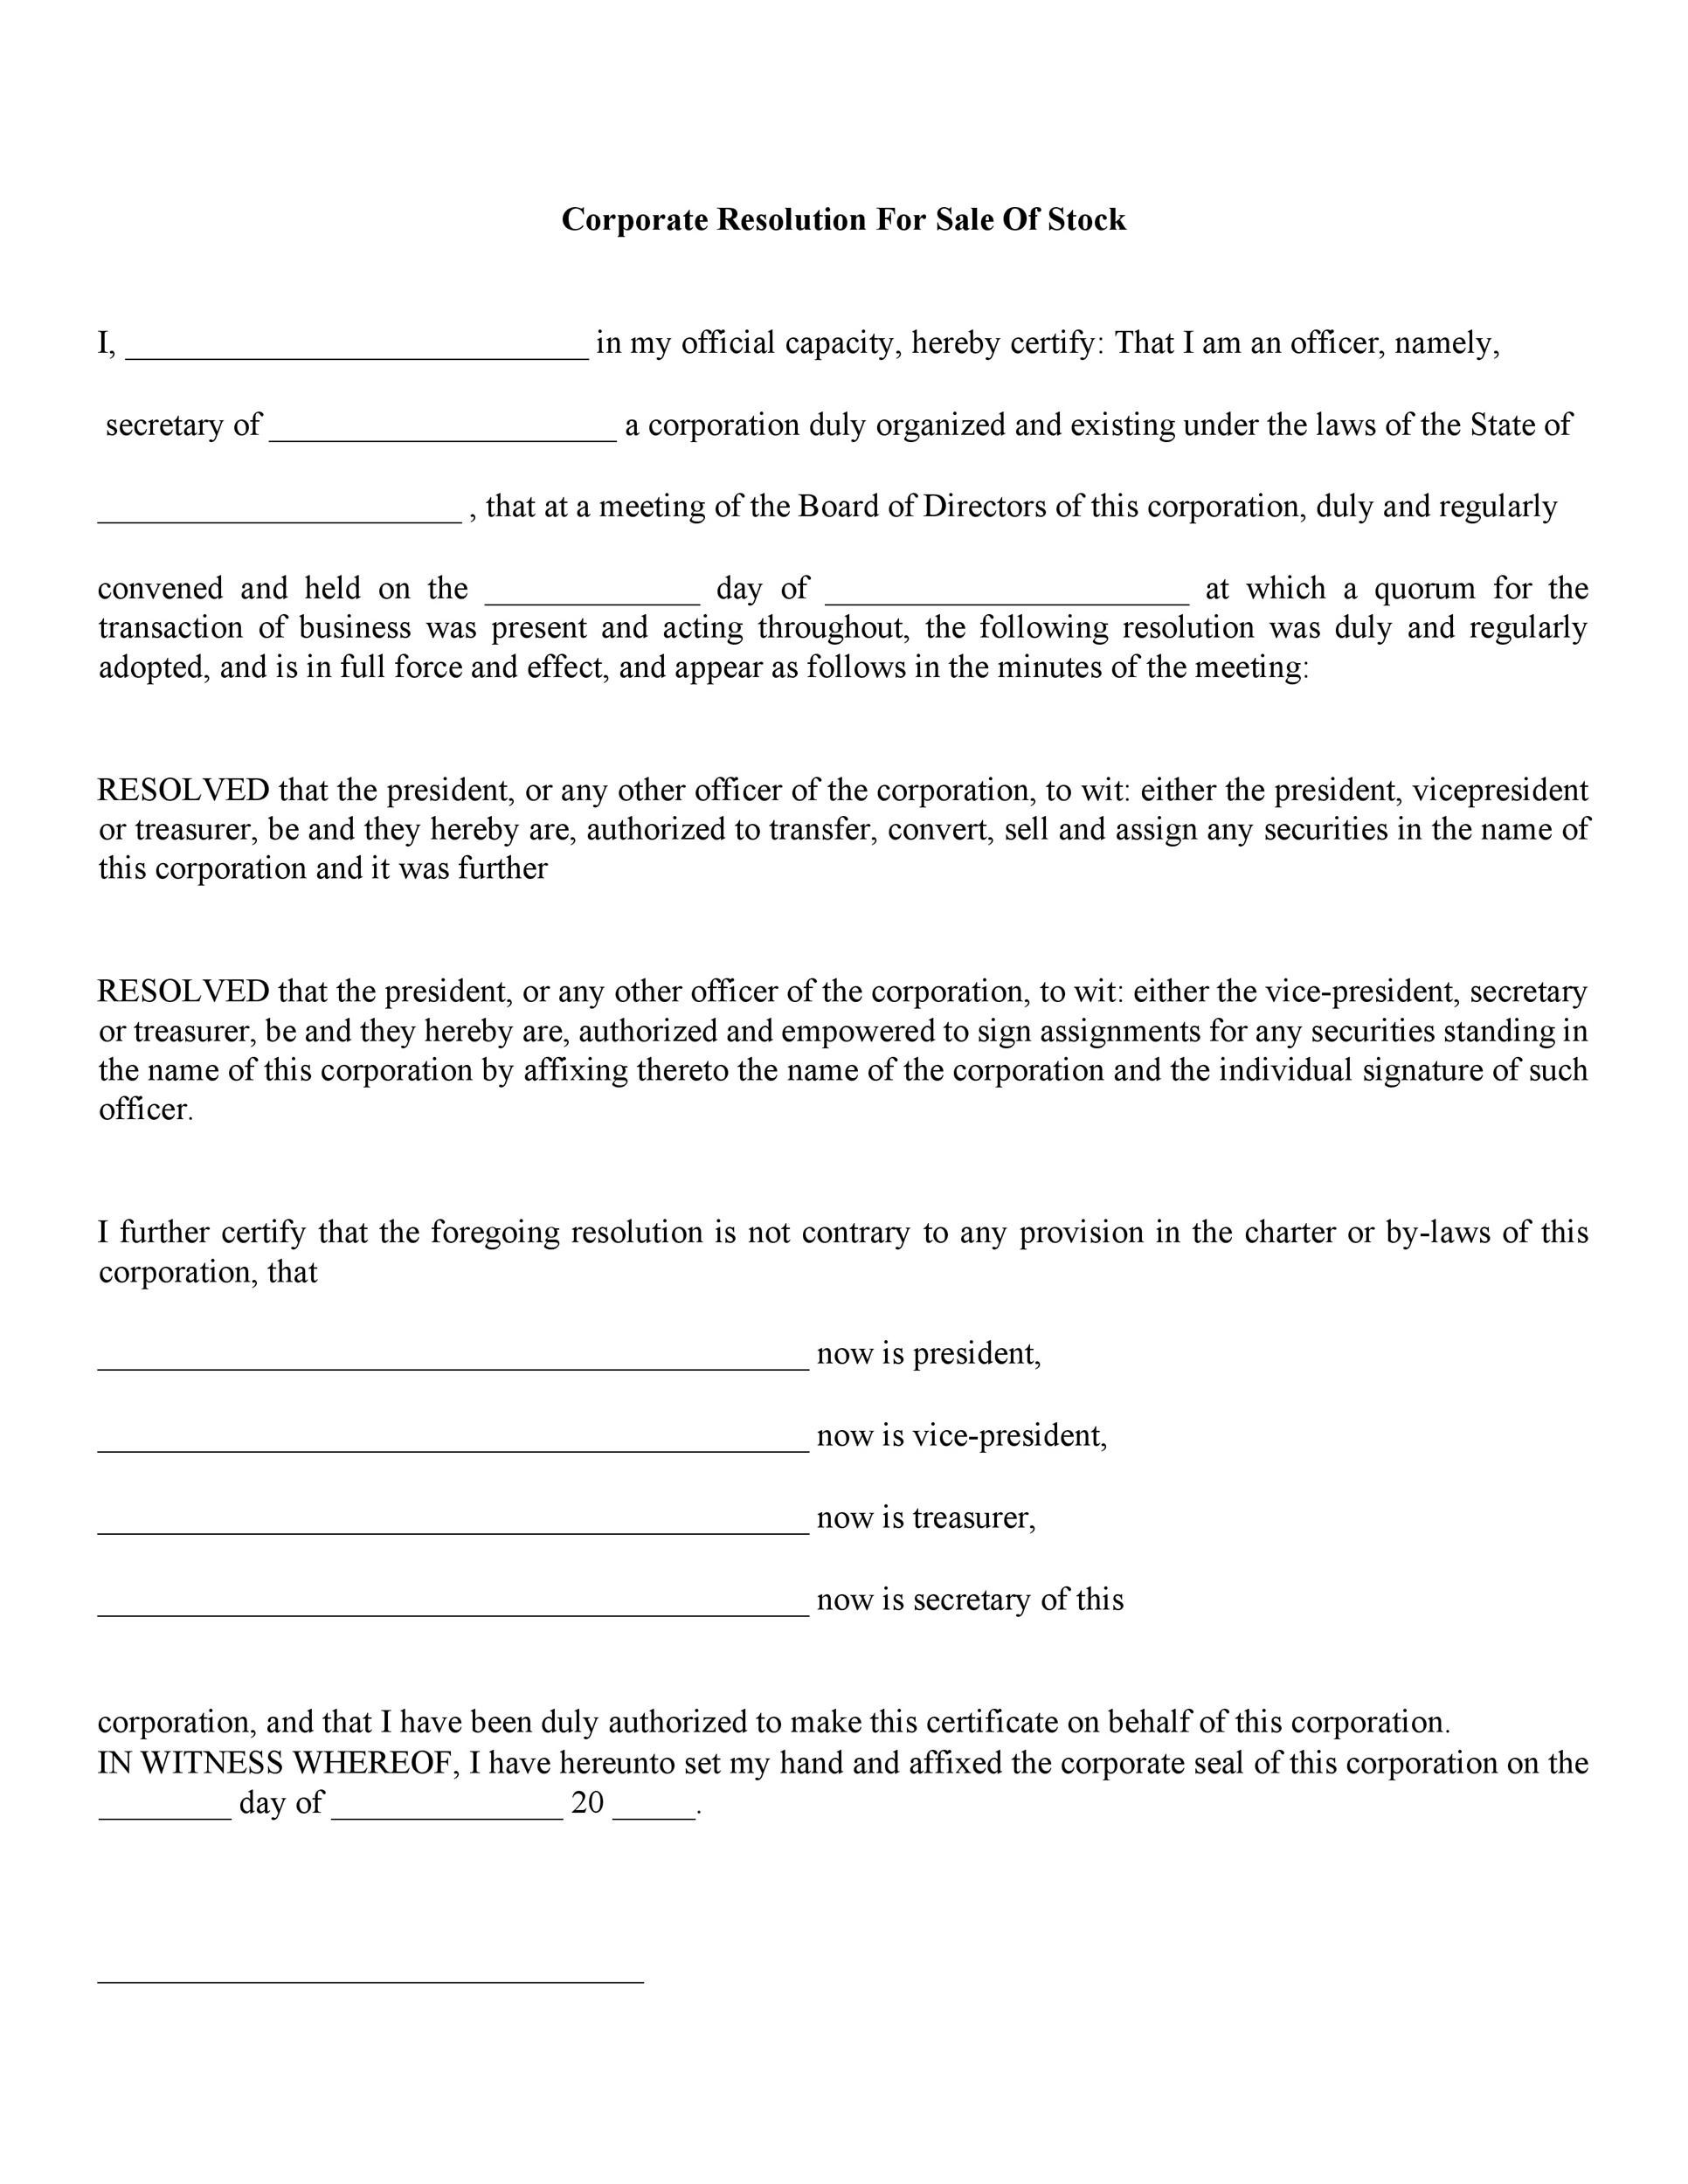 Free Corporate Resolution Form 16